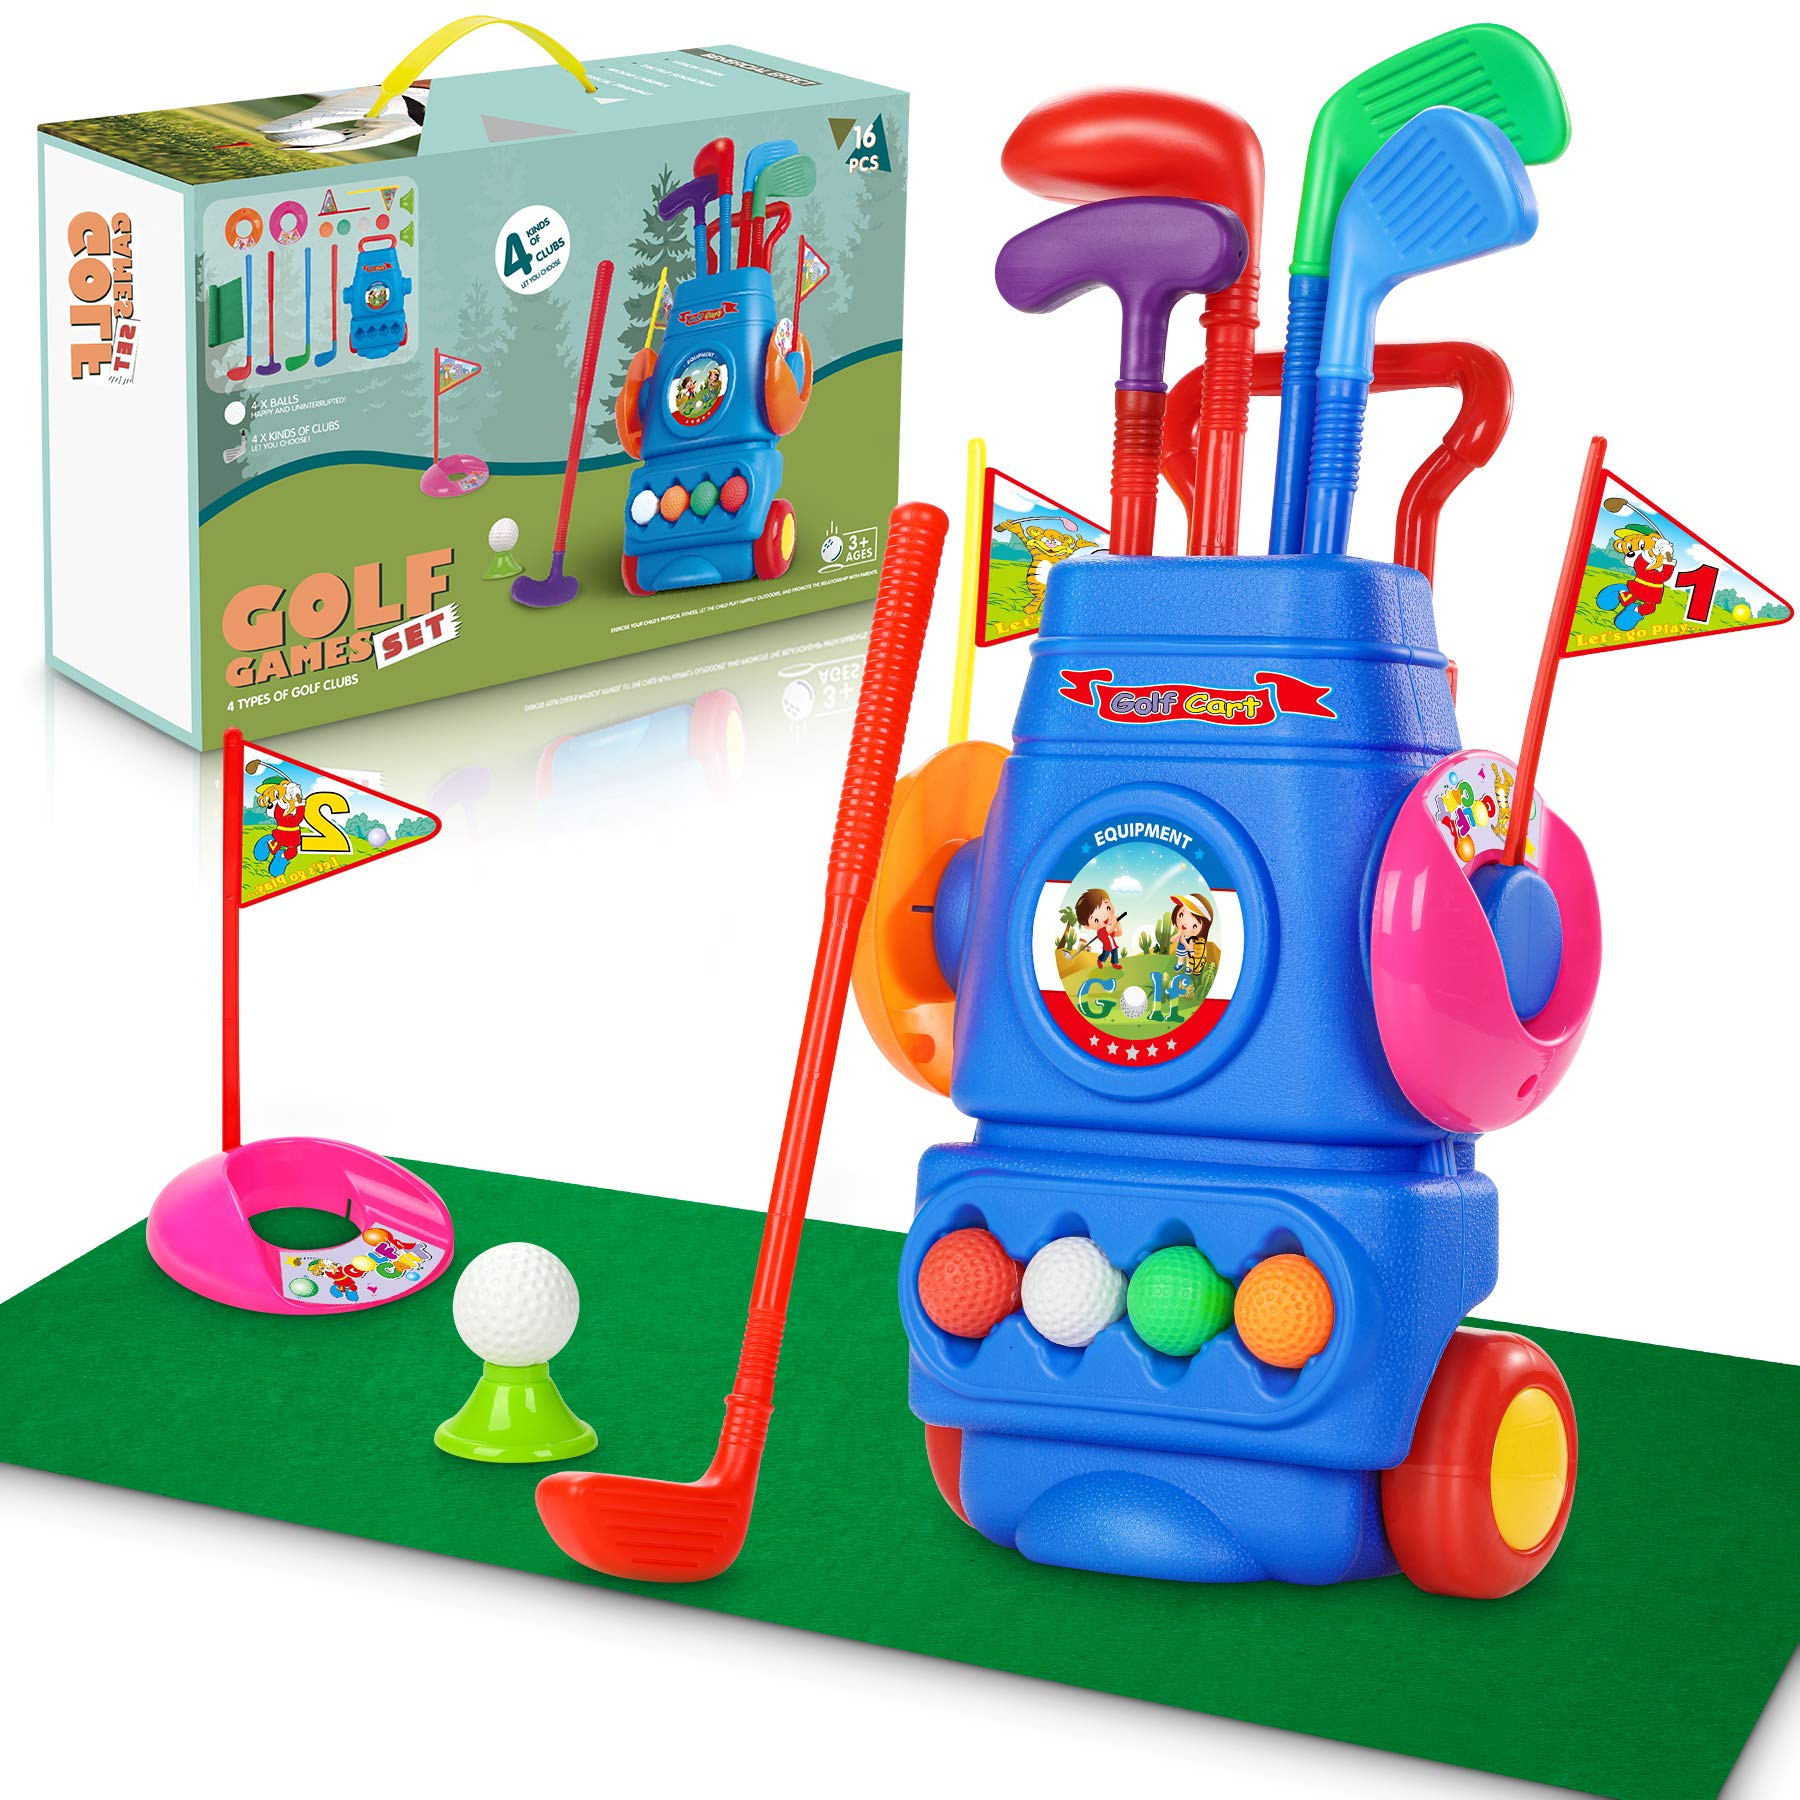 Jumpit Kids Golf Club Set Golf Cart With Wheels,Toddler Golf Set, 4 Colorful Golf Sticks & 4 Balls & 2 Practice Holes, Toddles Golf Games Toy, Early Childhood Education and Development Sport Toy Gifts